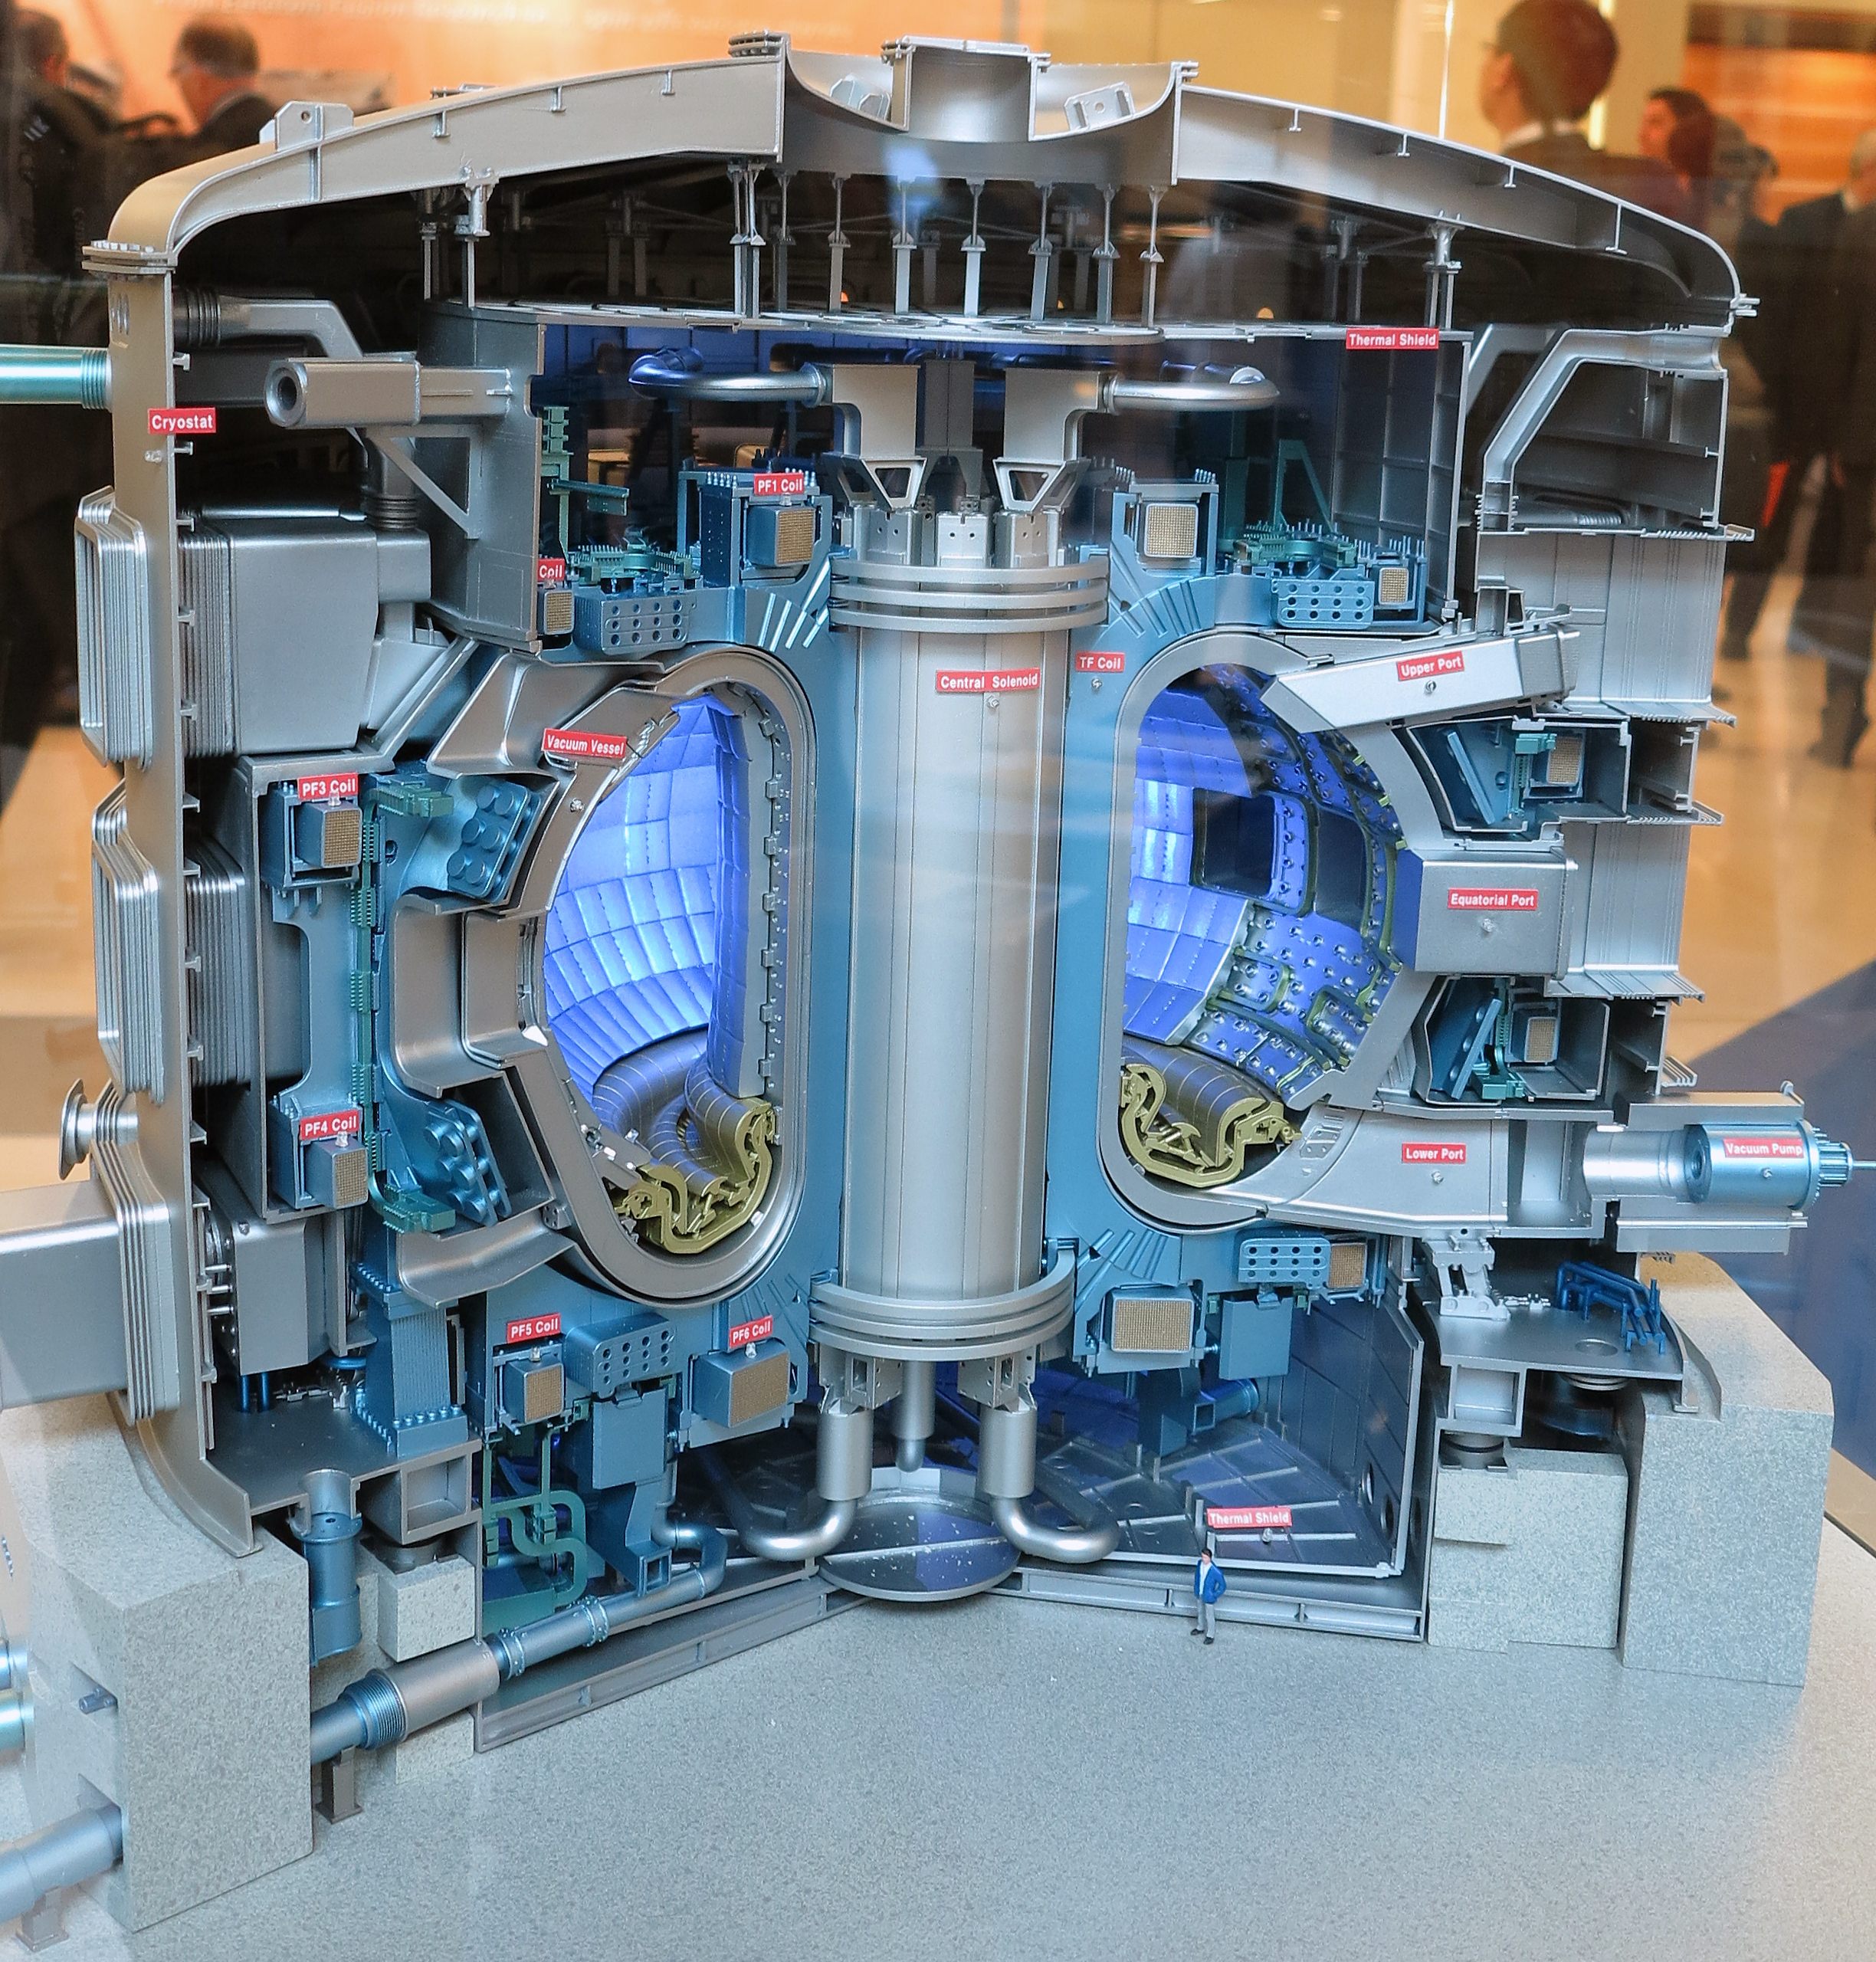 ITER_Exhibit_(01810402)_(12219071813)_(cropped).jpeg